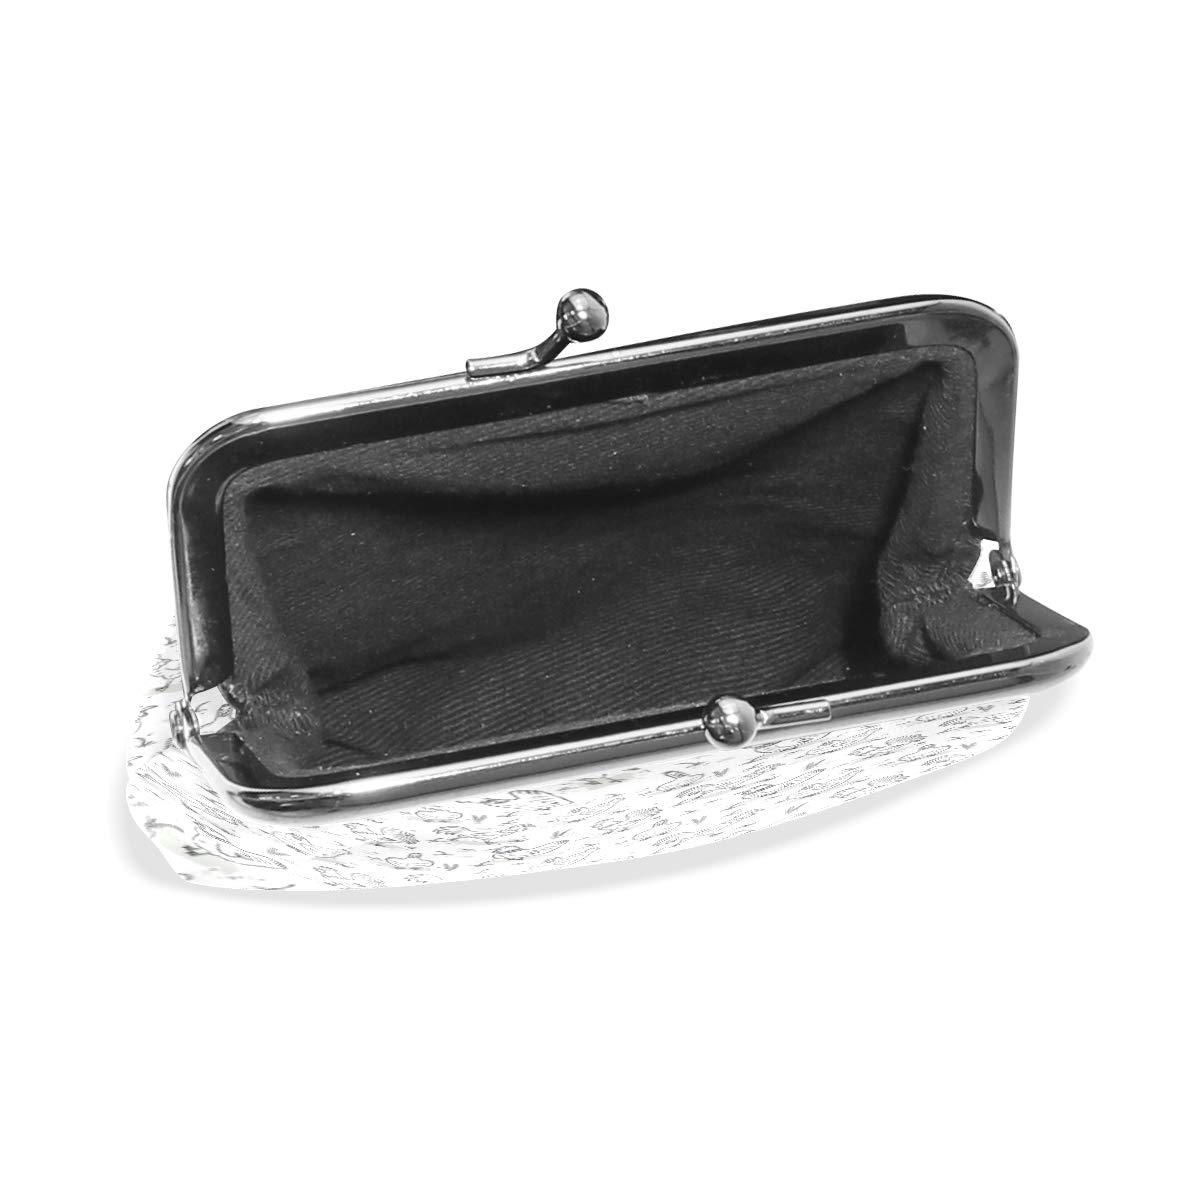 Exquisite Buckle Coin Purses Hen Roosters 2019 Mini Wallet Key Card Holder Purse for Women